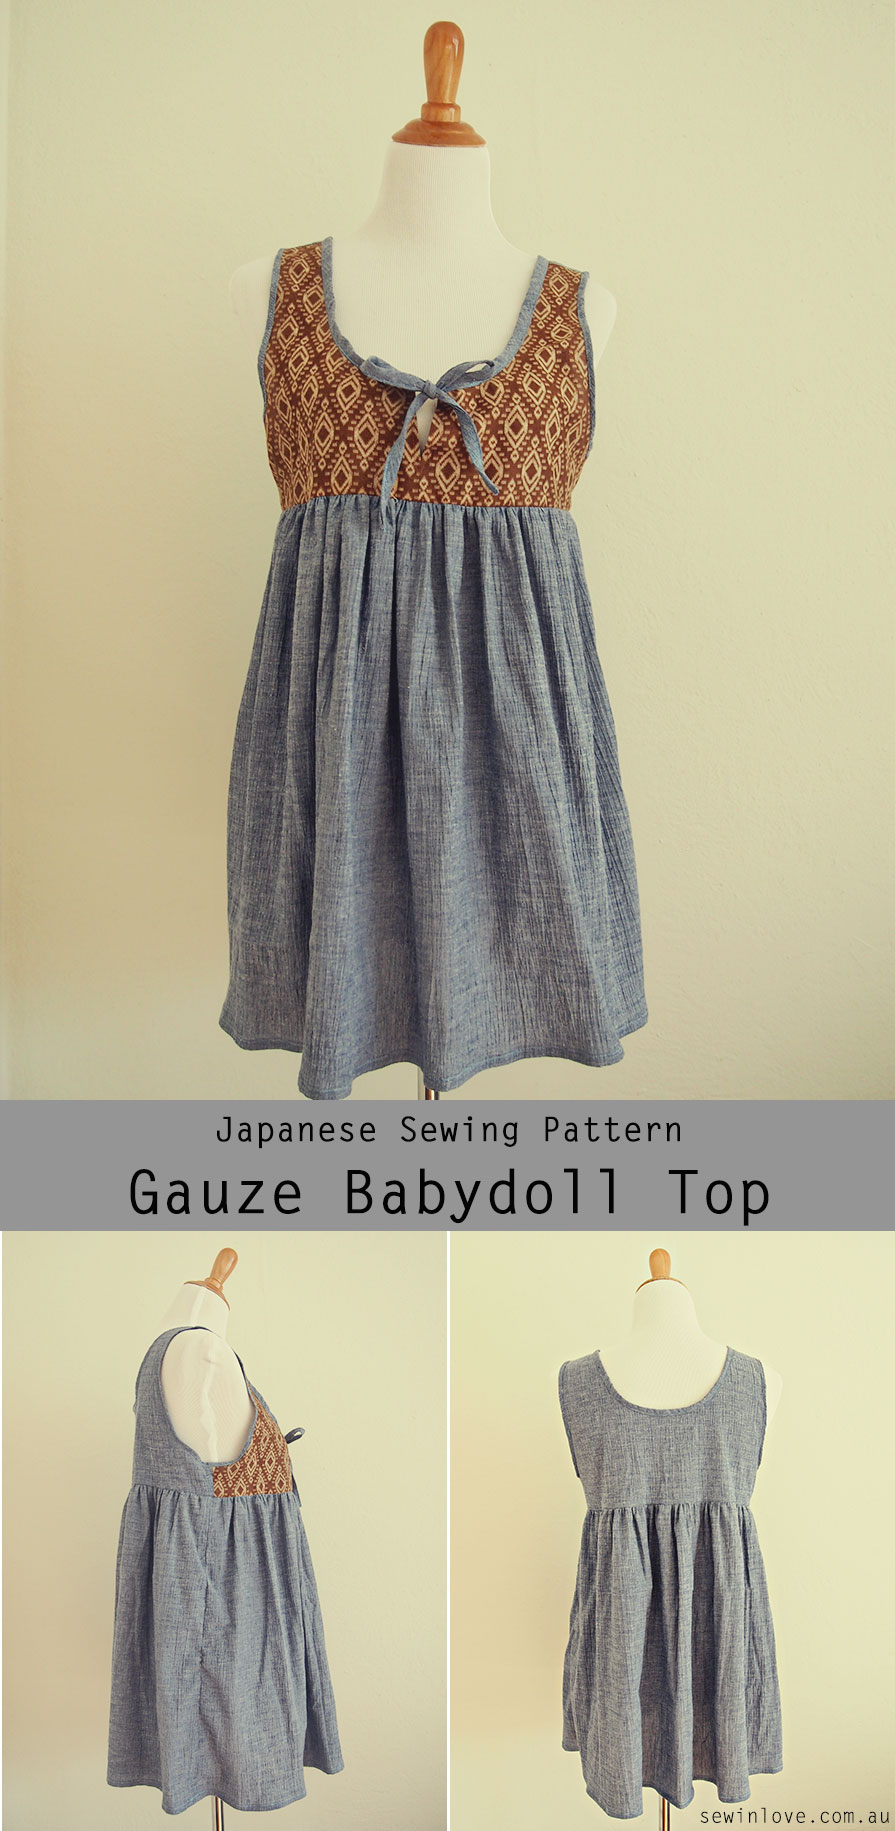 Babydoll-maternity-nursint-top-sewing-pattern-Japanese_Pinterest